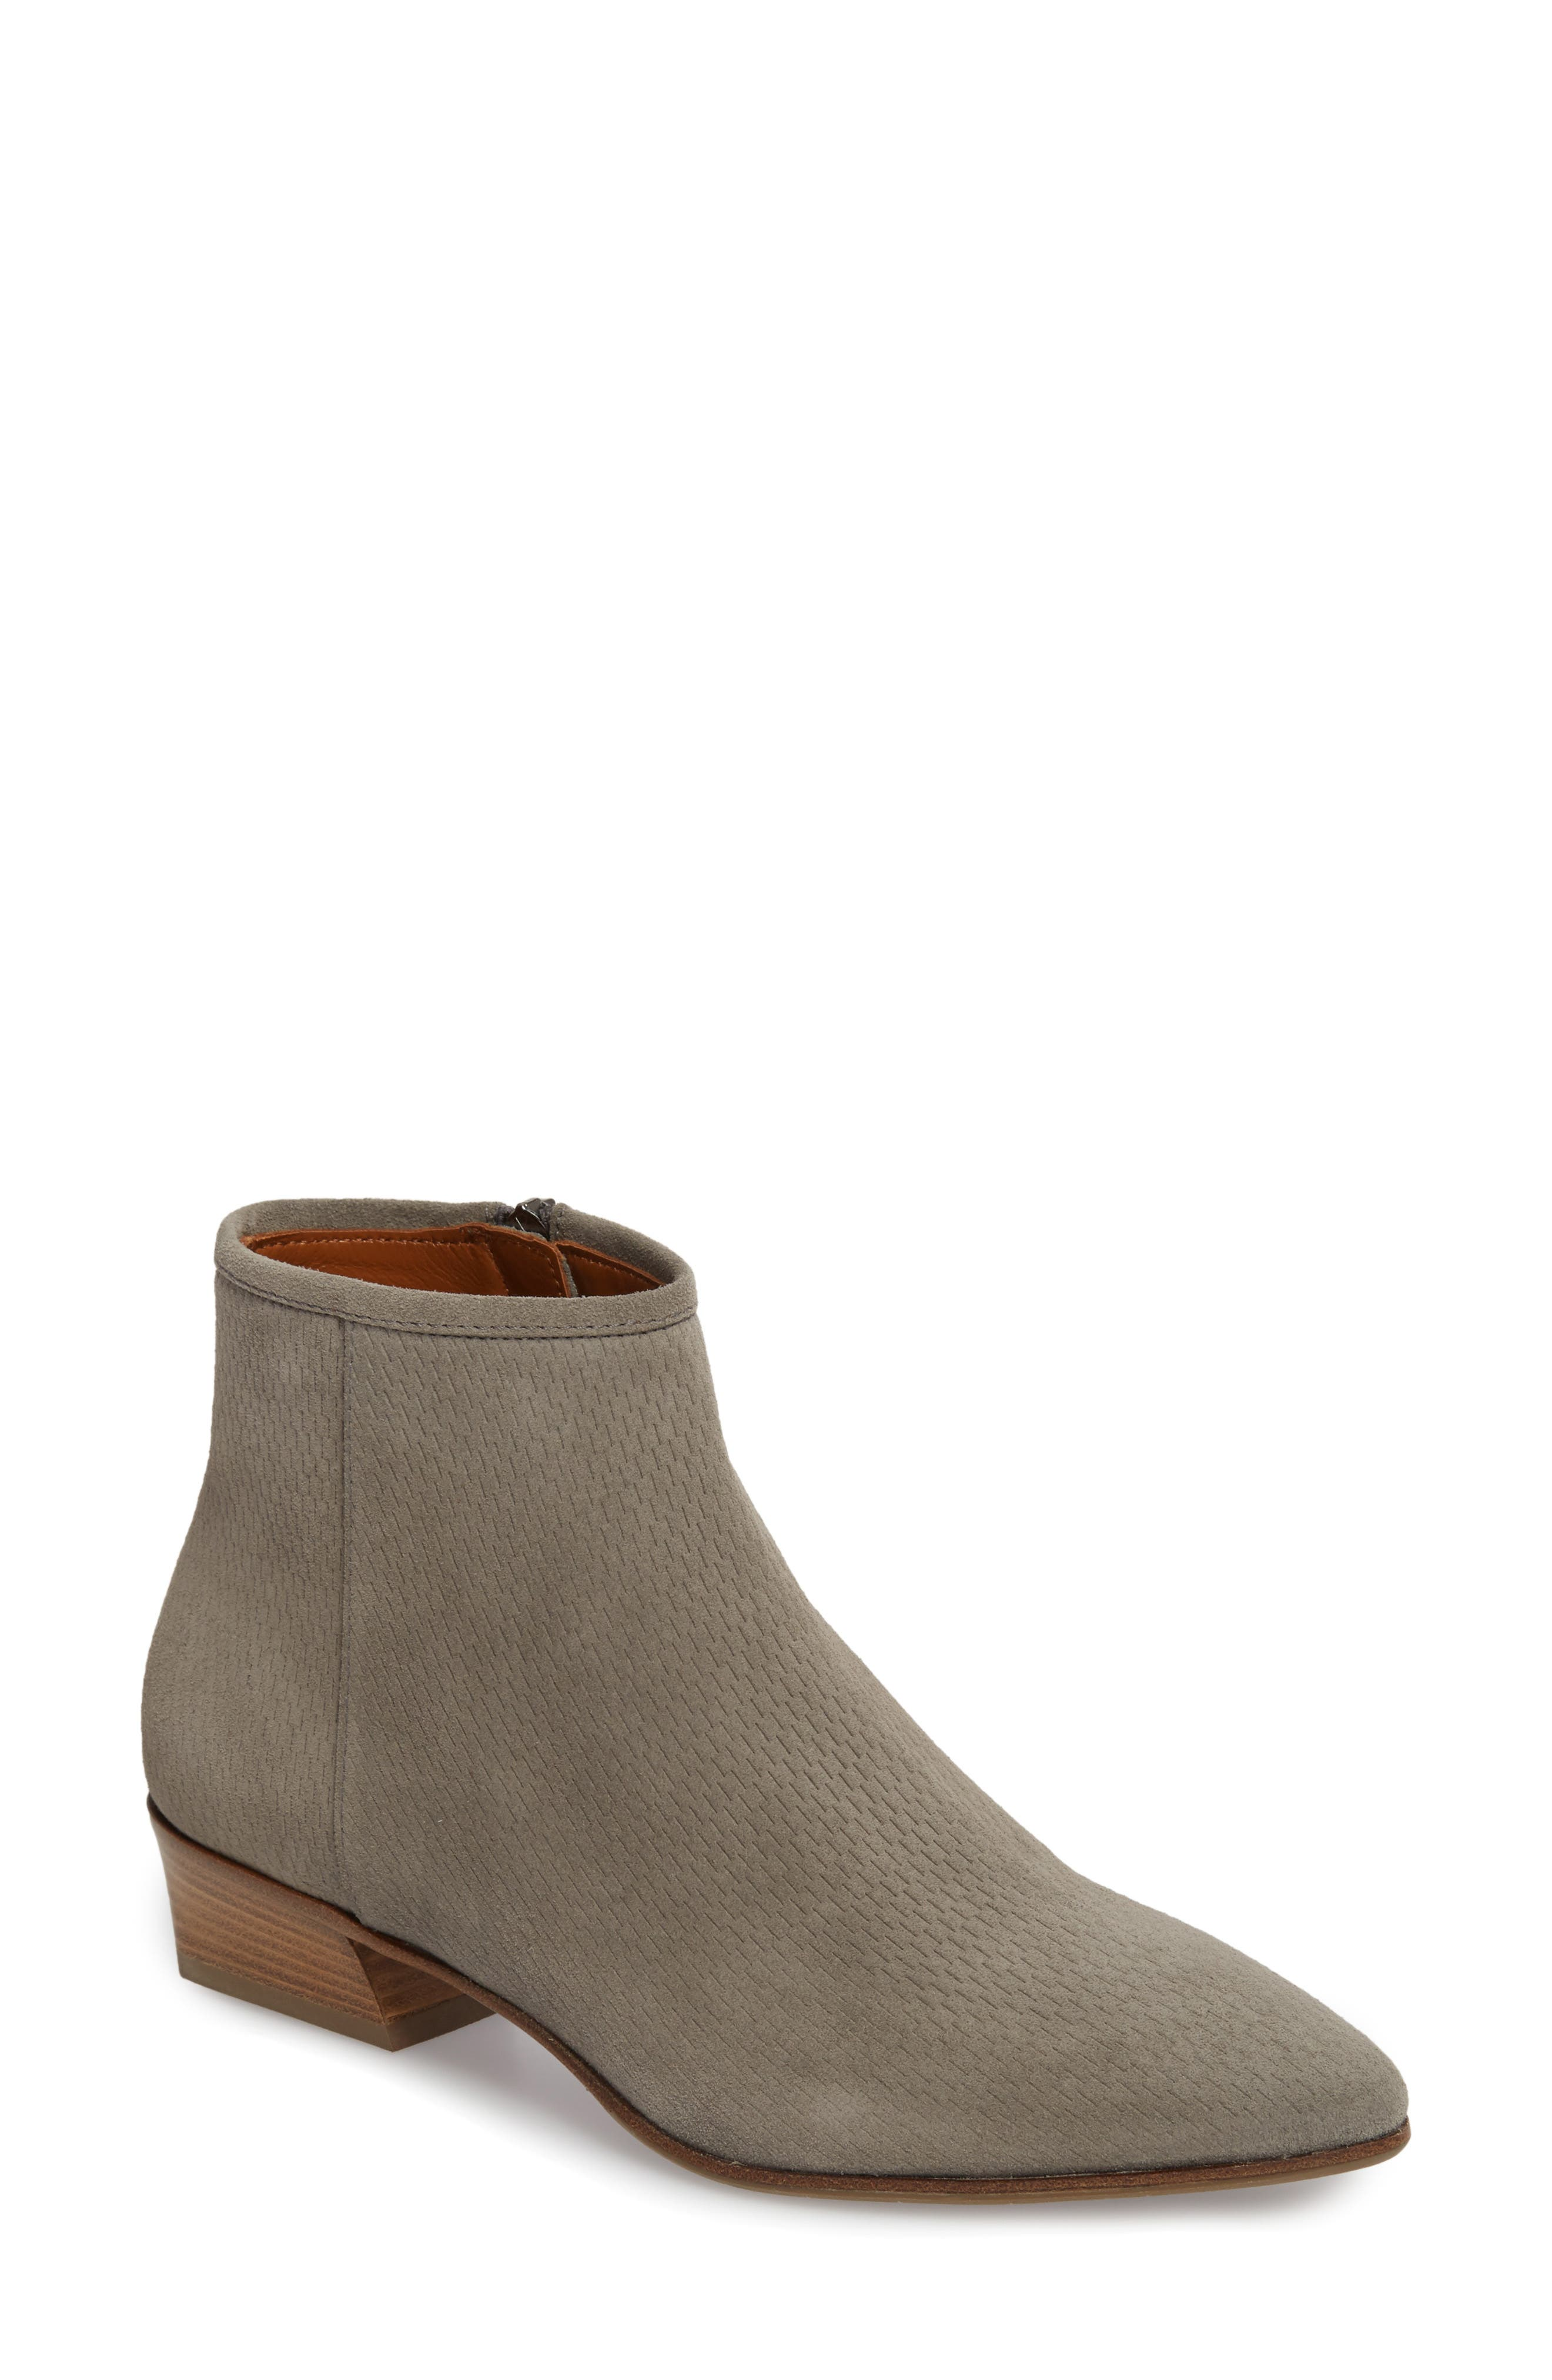 Fire Embossed Bootie,                             Main thumbnail 1, color,                             020